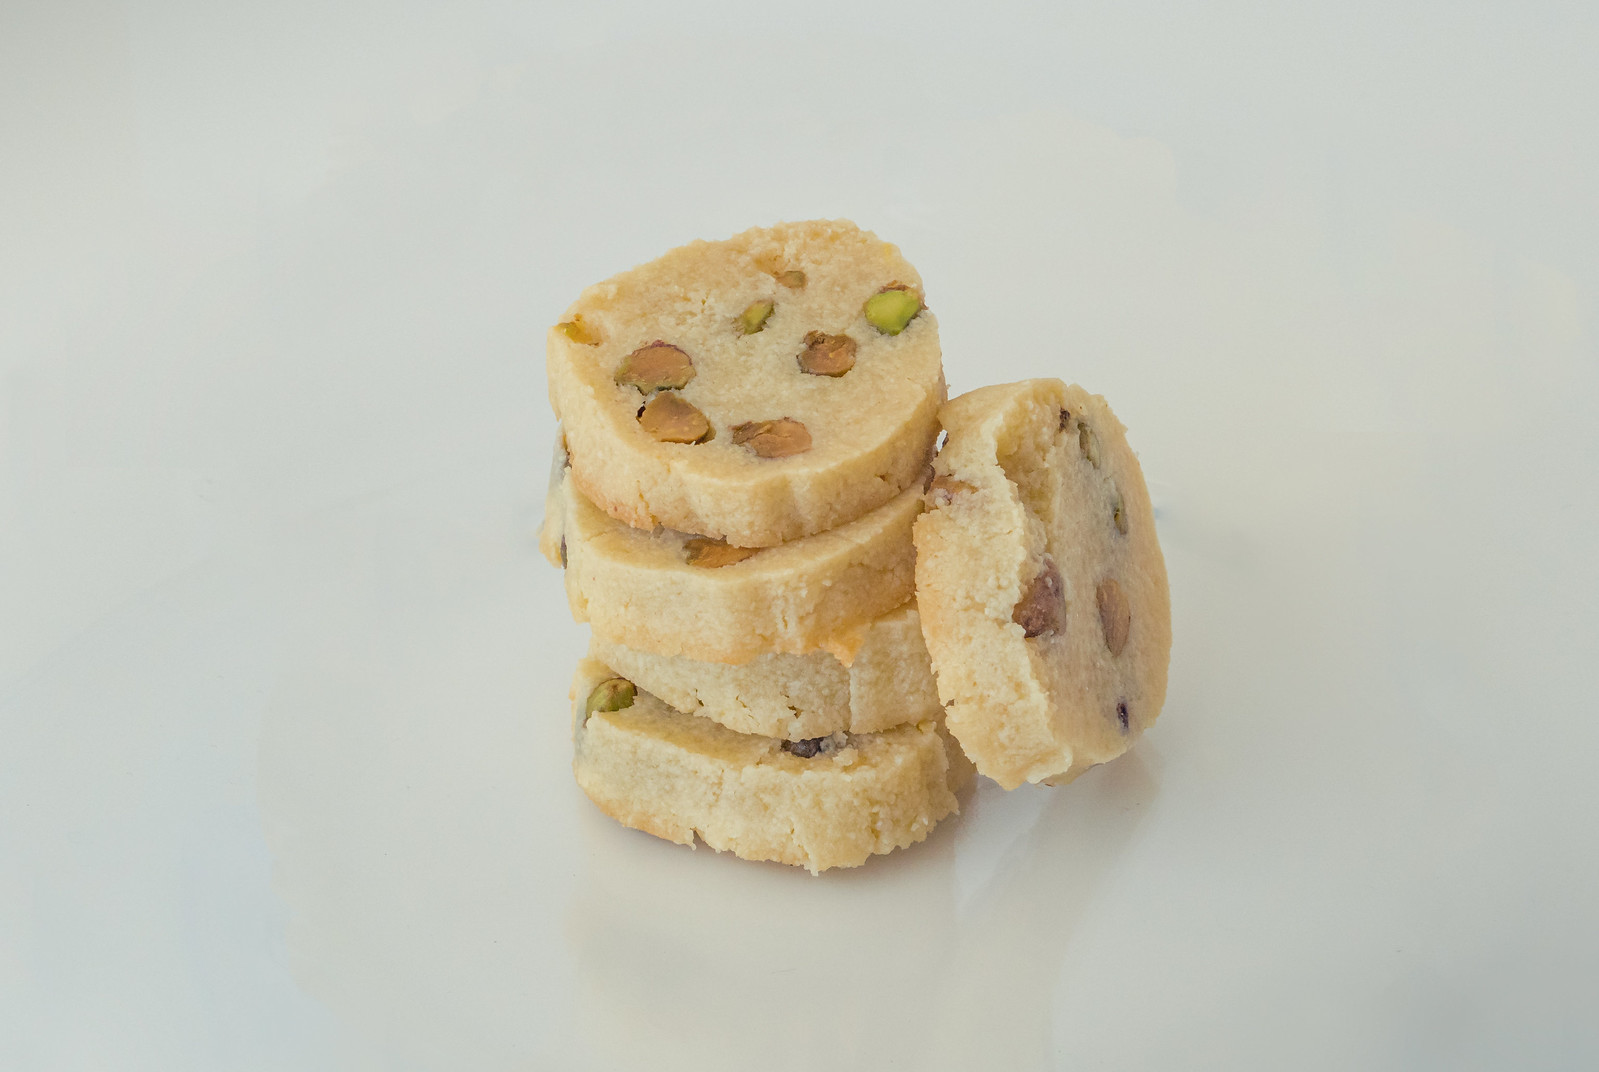 Recipe: Low-Carbohydrate, Healthy Fat Pistachio Shortbread Cookies